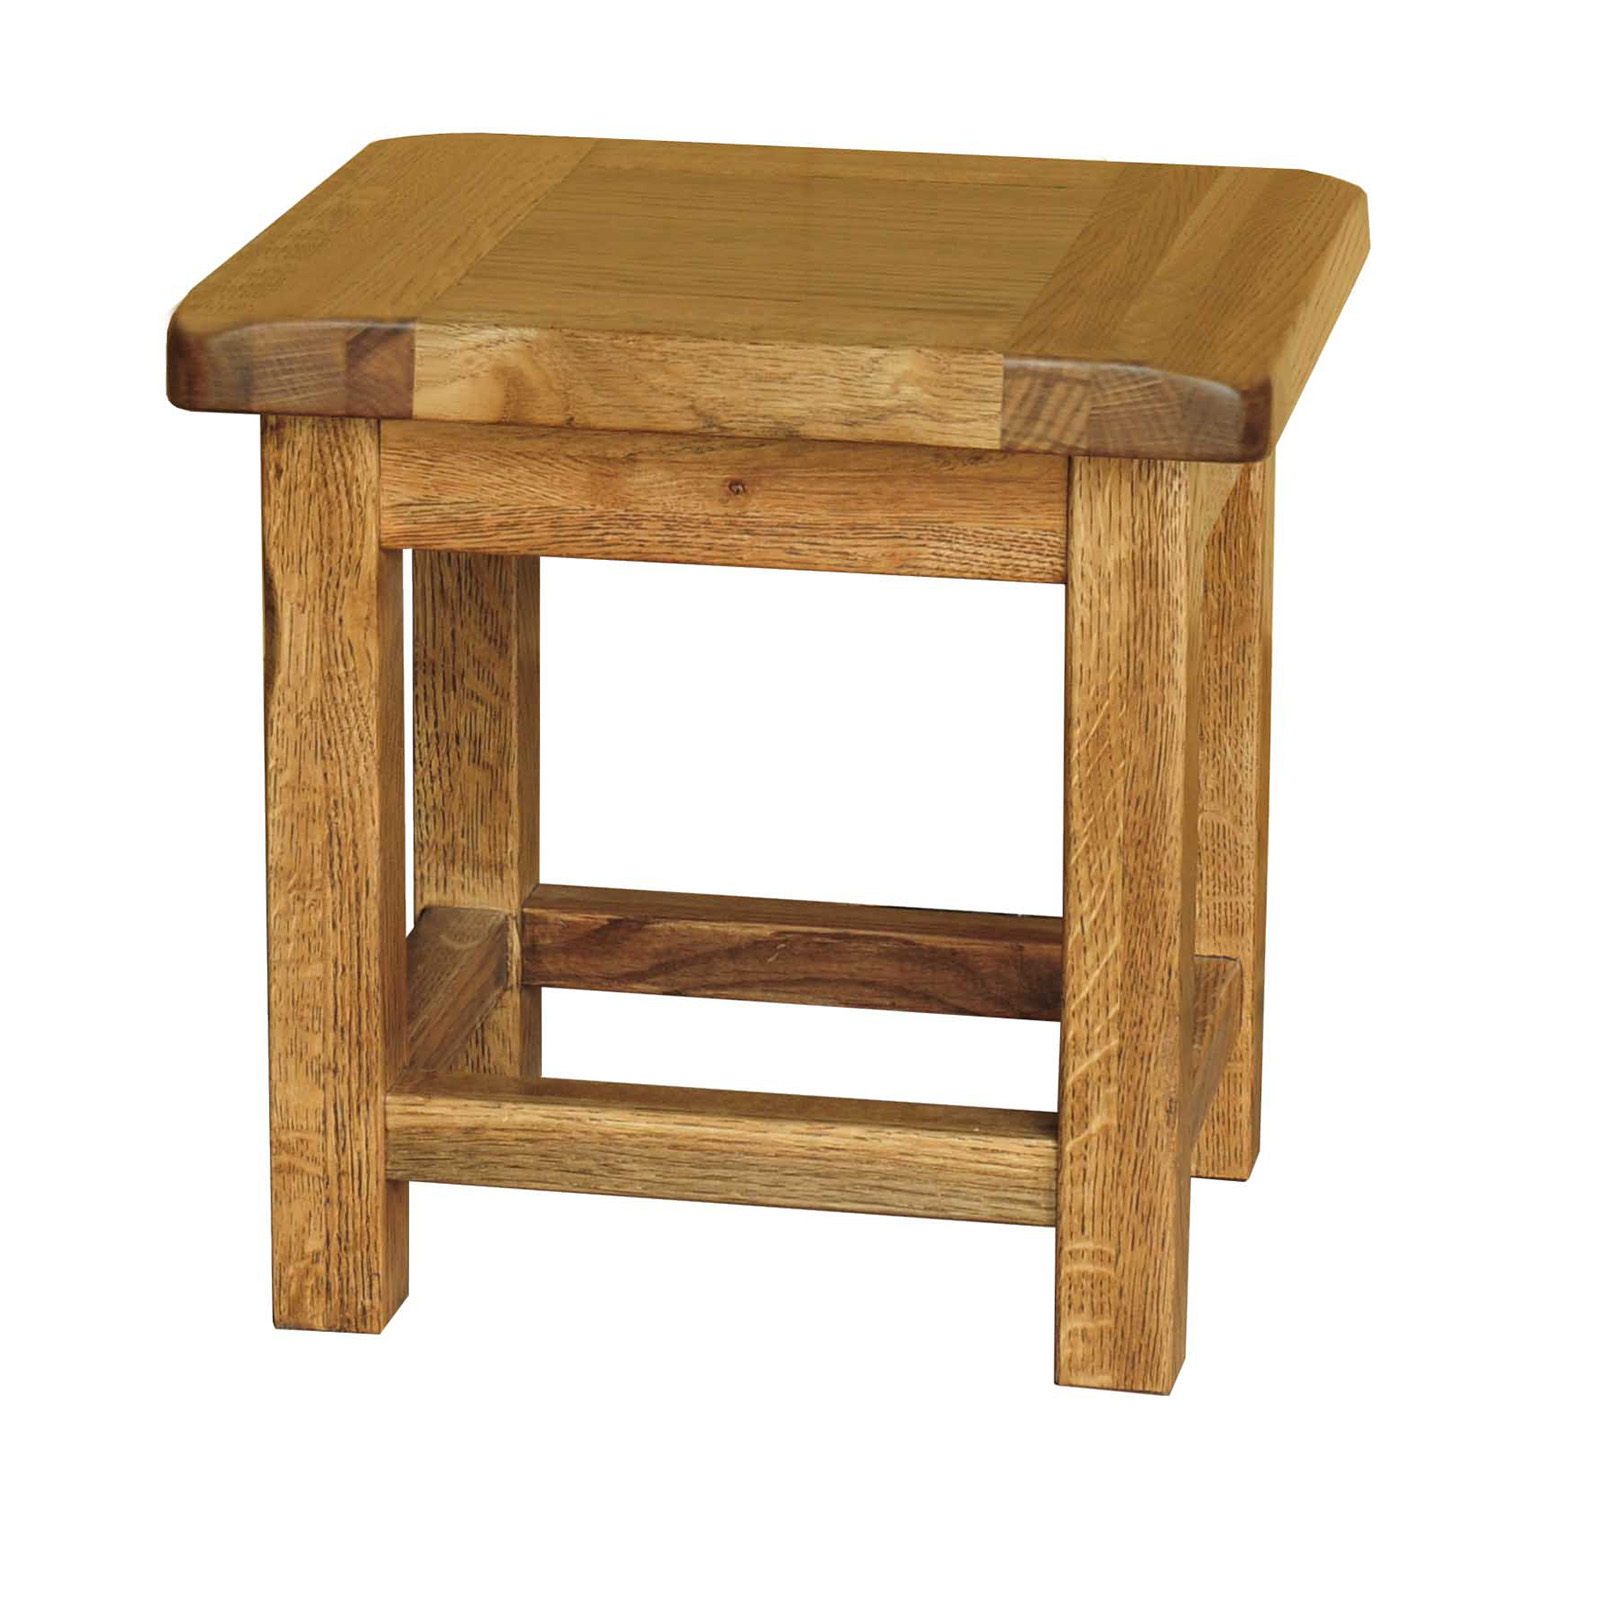 Country oak small side table realwoods